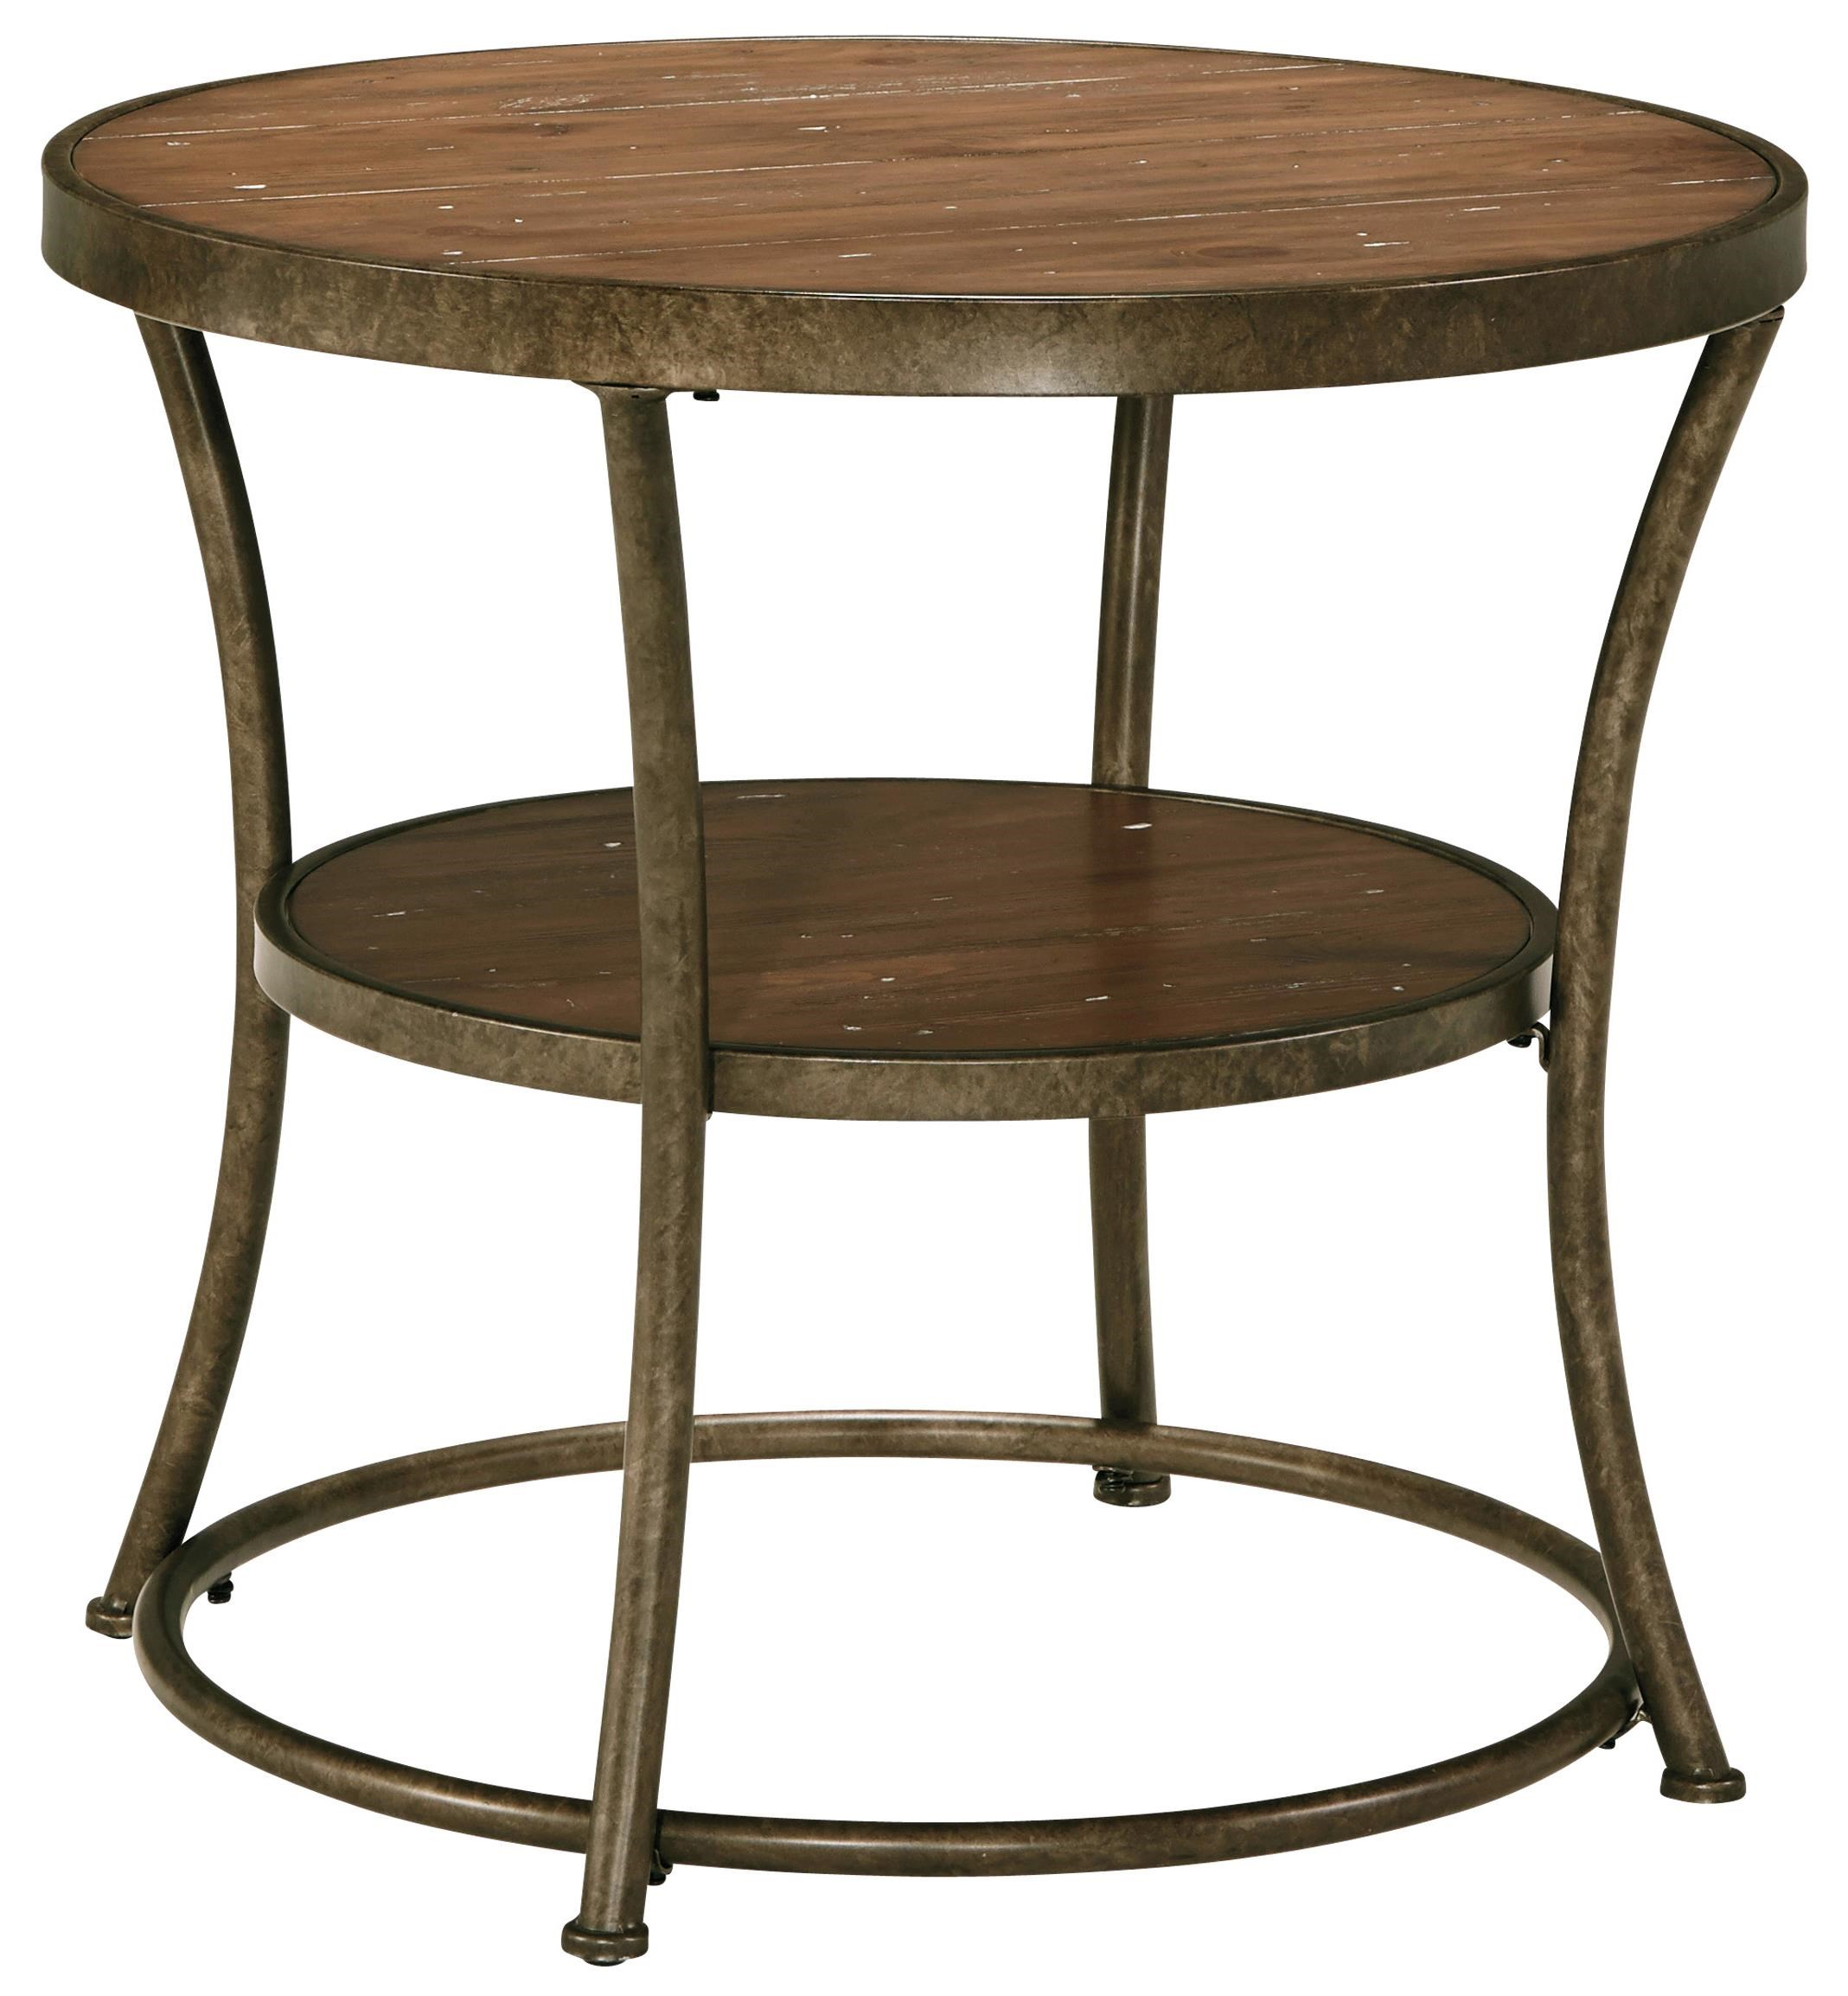 Signature Design By Ashley Narina Rustic Metal Frame Round End Table With  Distressed Pine Top U0026 Shelf   John V Schultz Furniture   End Table